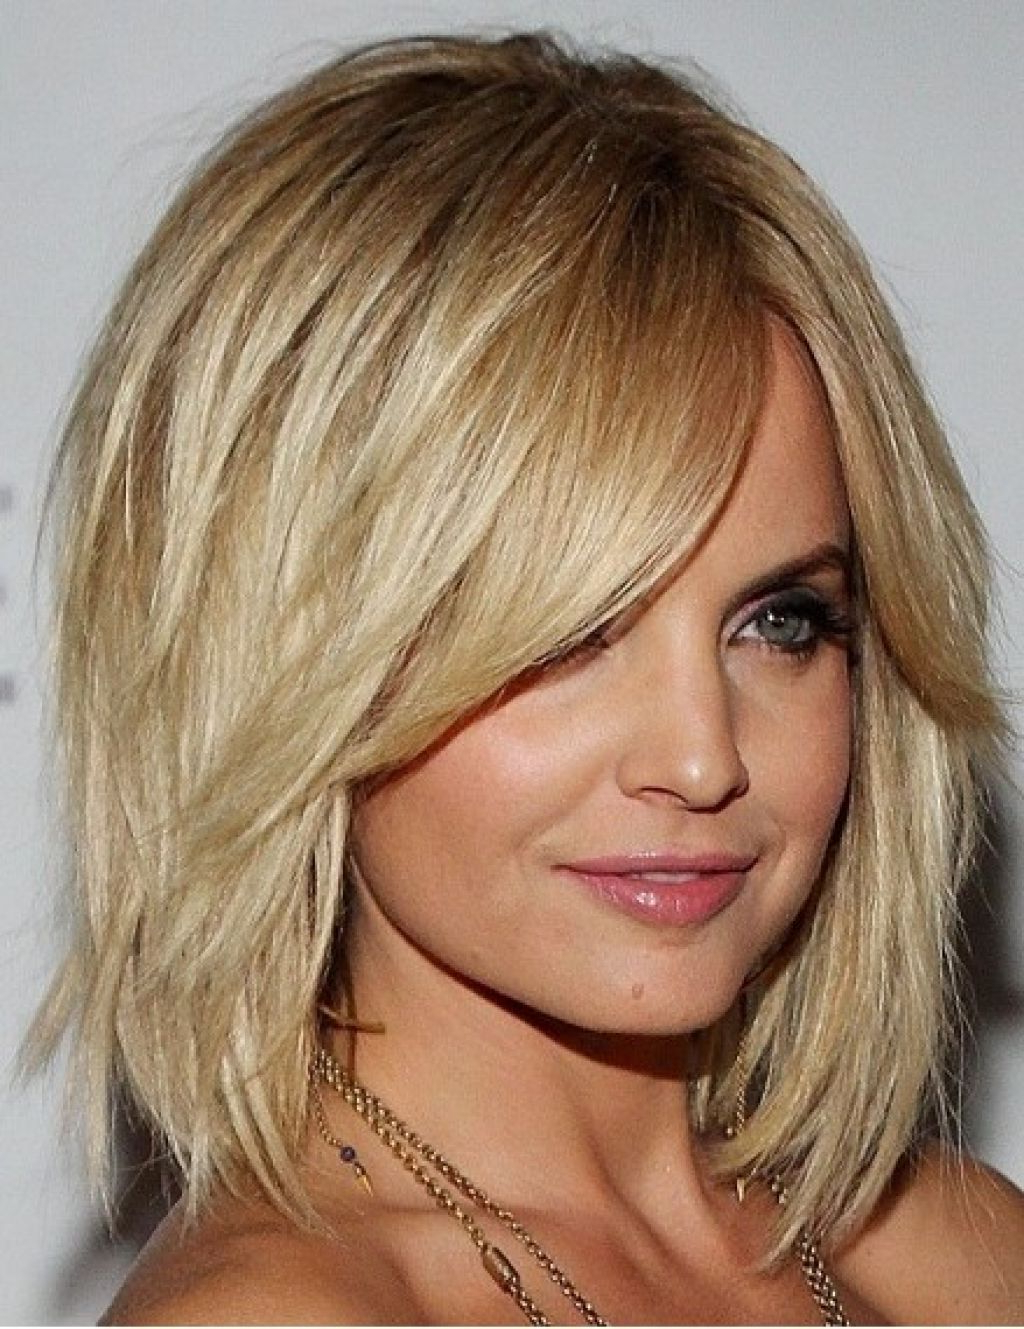 Most Recently Released Choppy Medium Hairstyles For Older Women Intended For Choppy Bob Style For Mid Length Hair On Women (View 10 of 20)